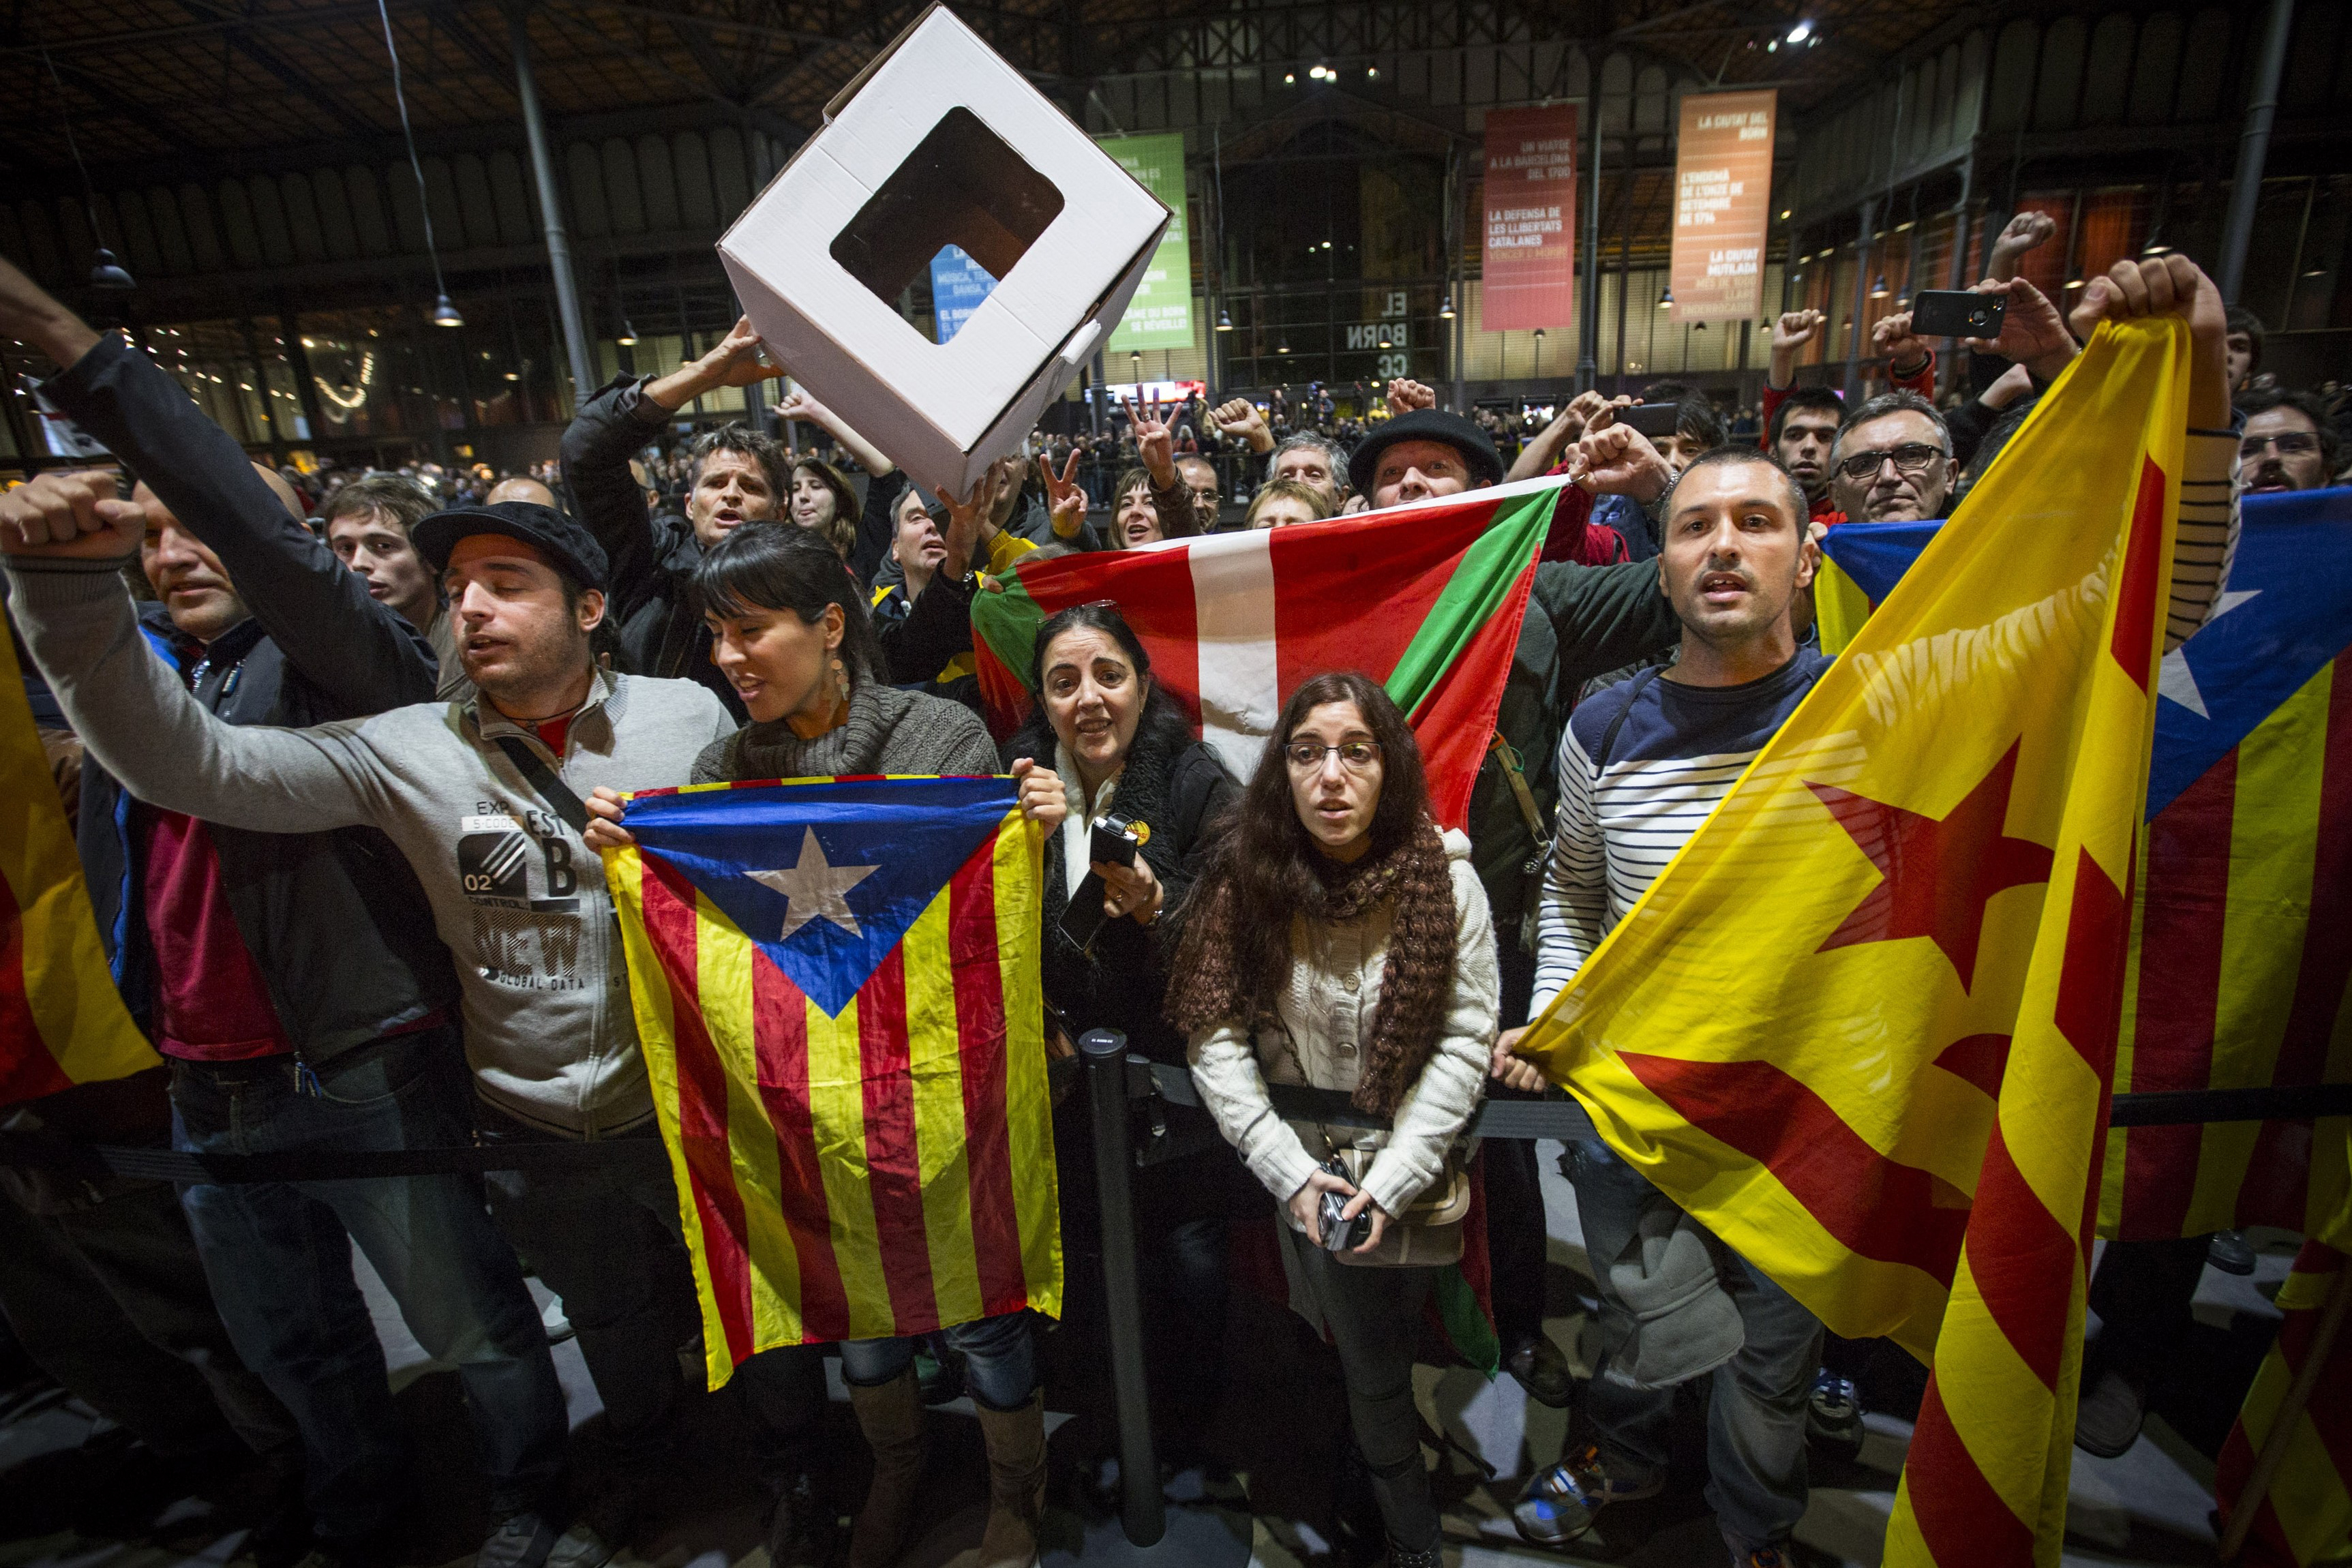 Catalonia National Assembly (ANC) celebrates the unofficial referendum